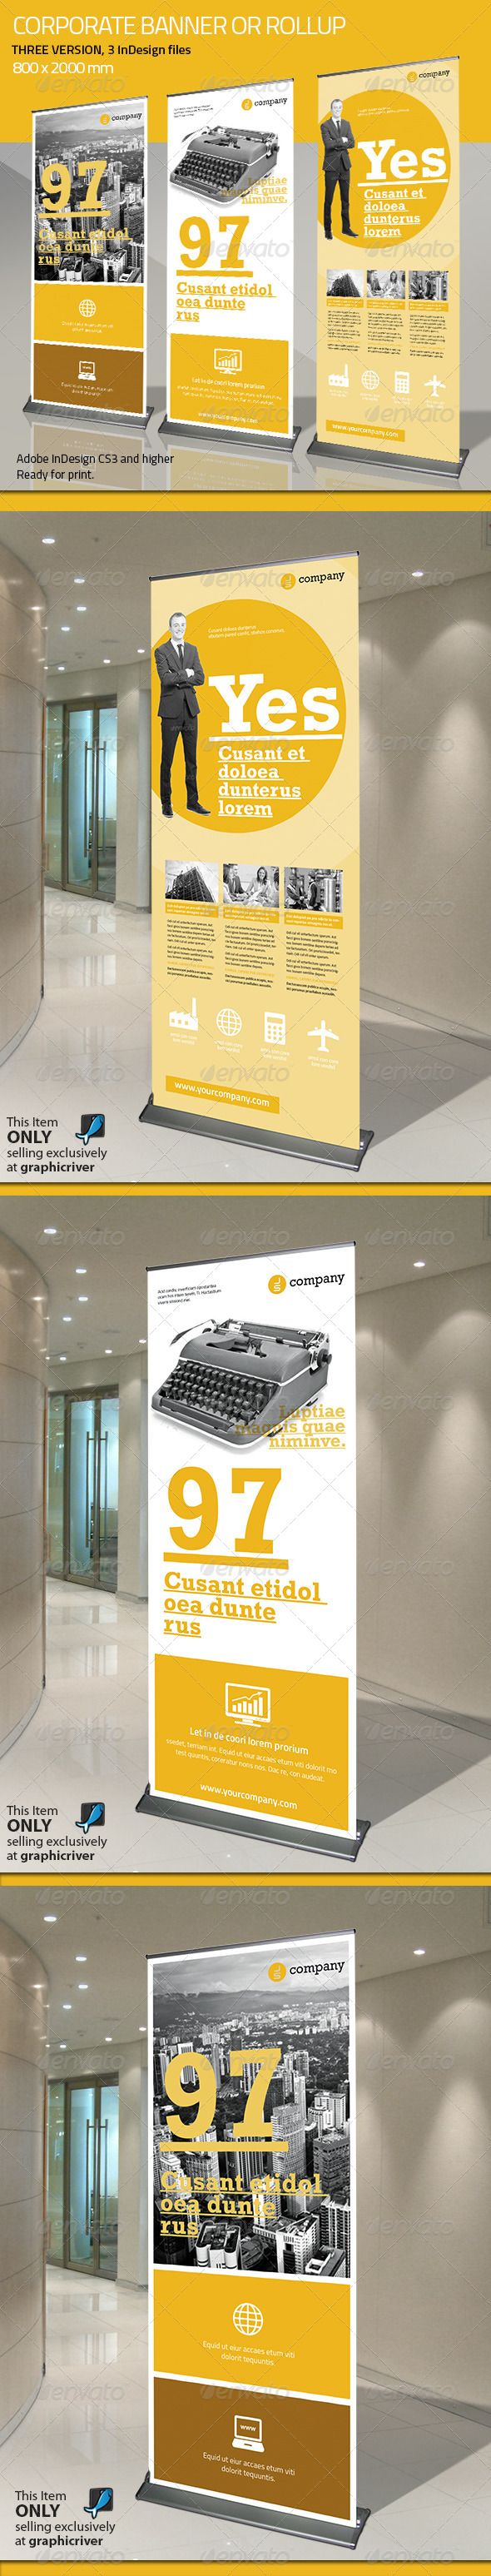 Corporate Banner or Rollup Vol 5